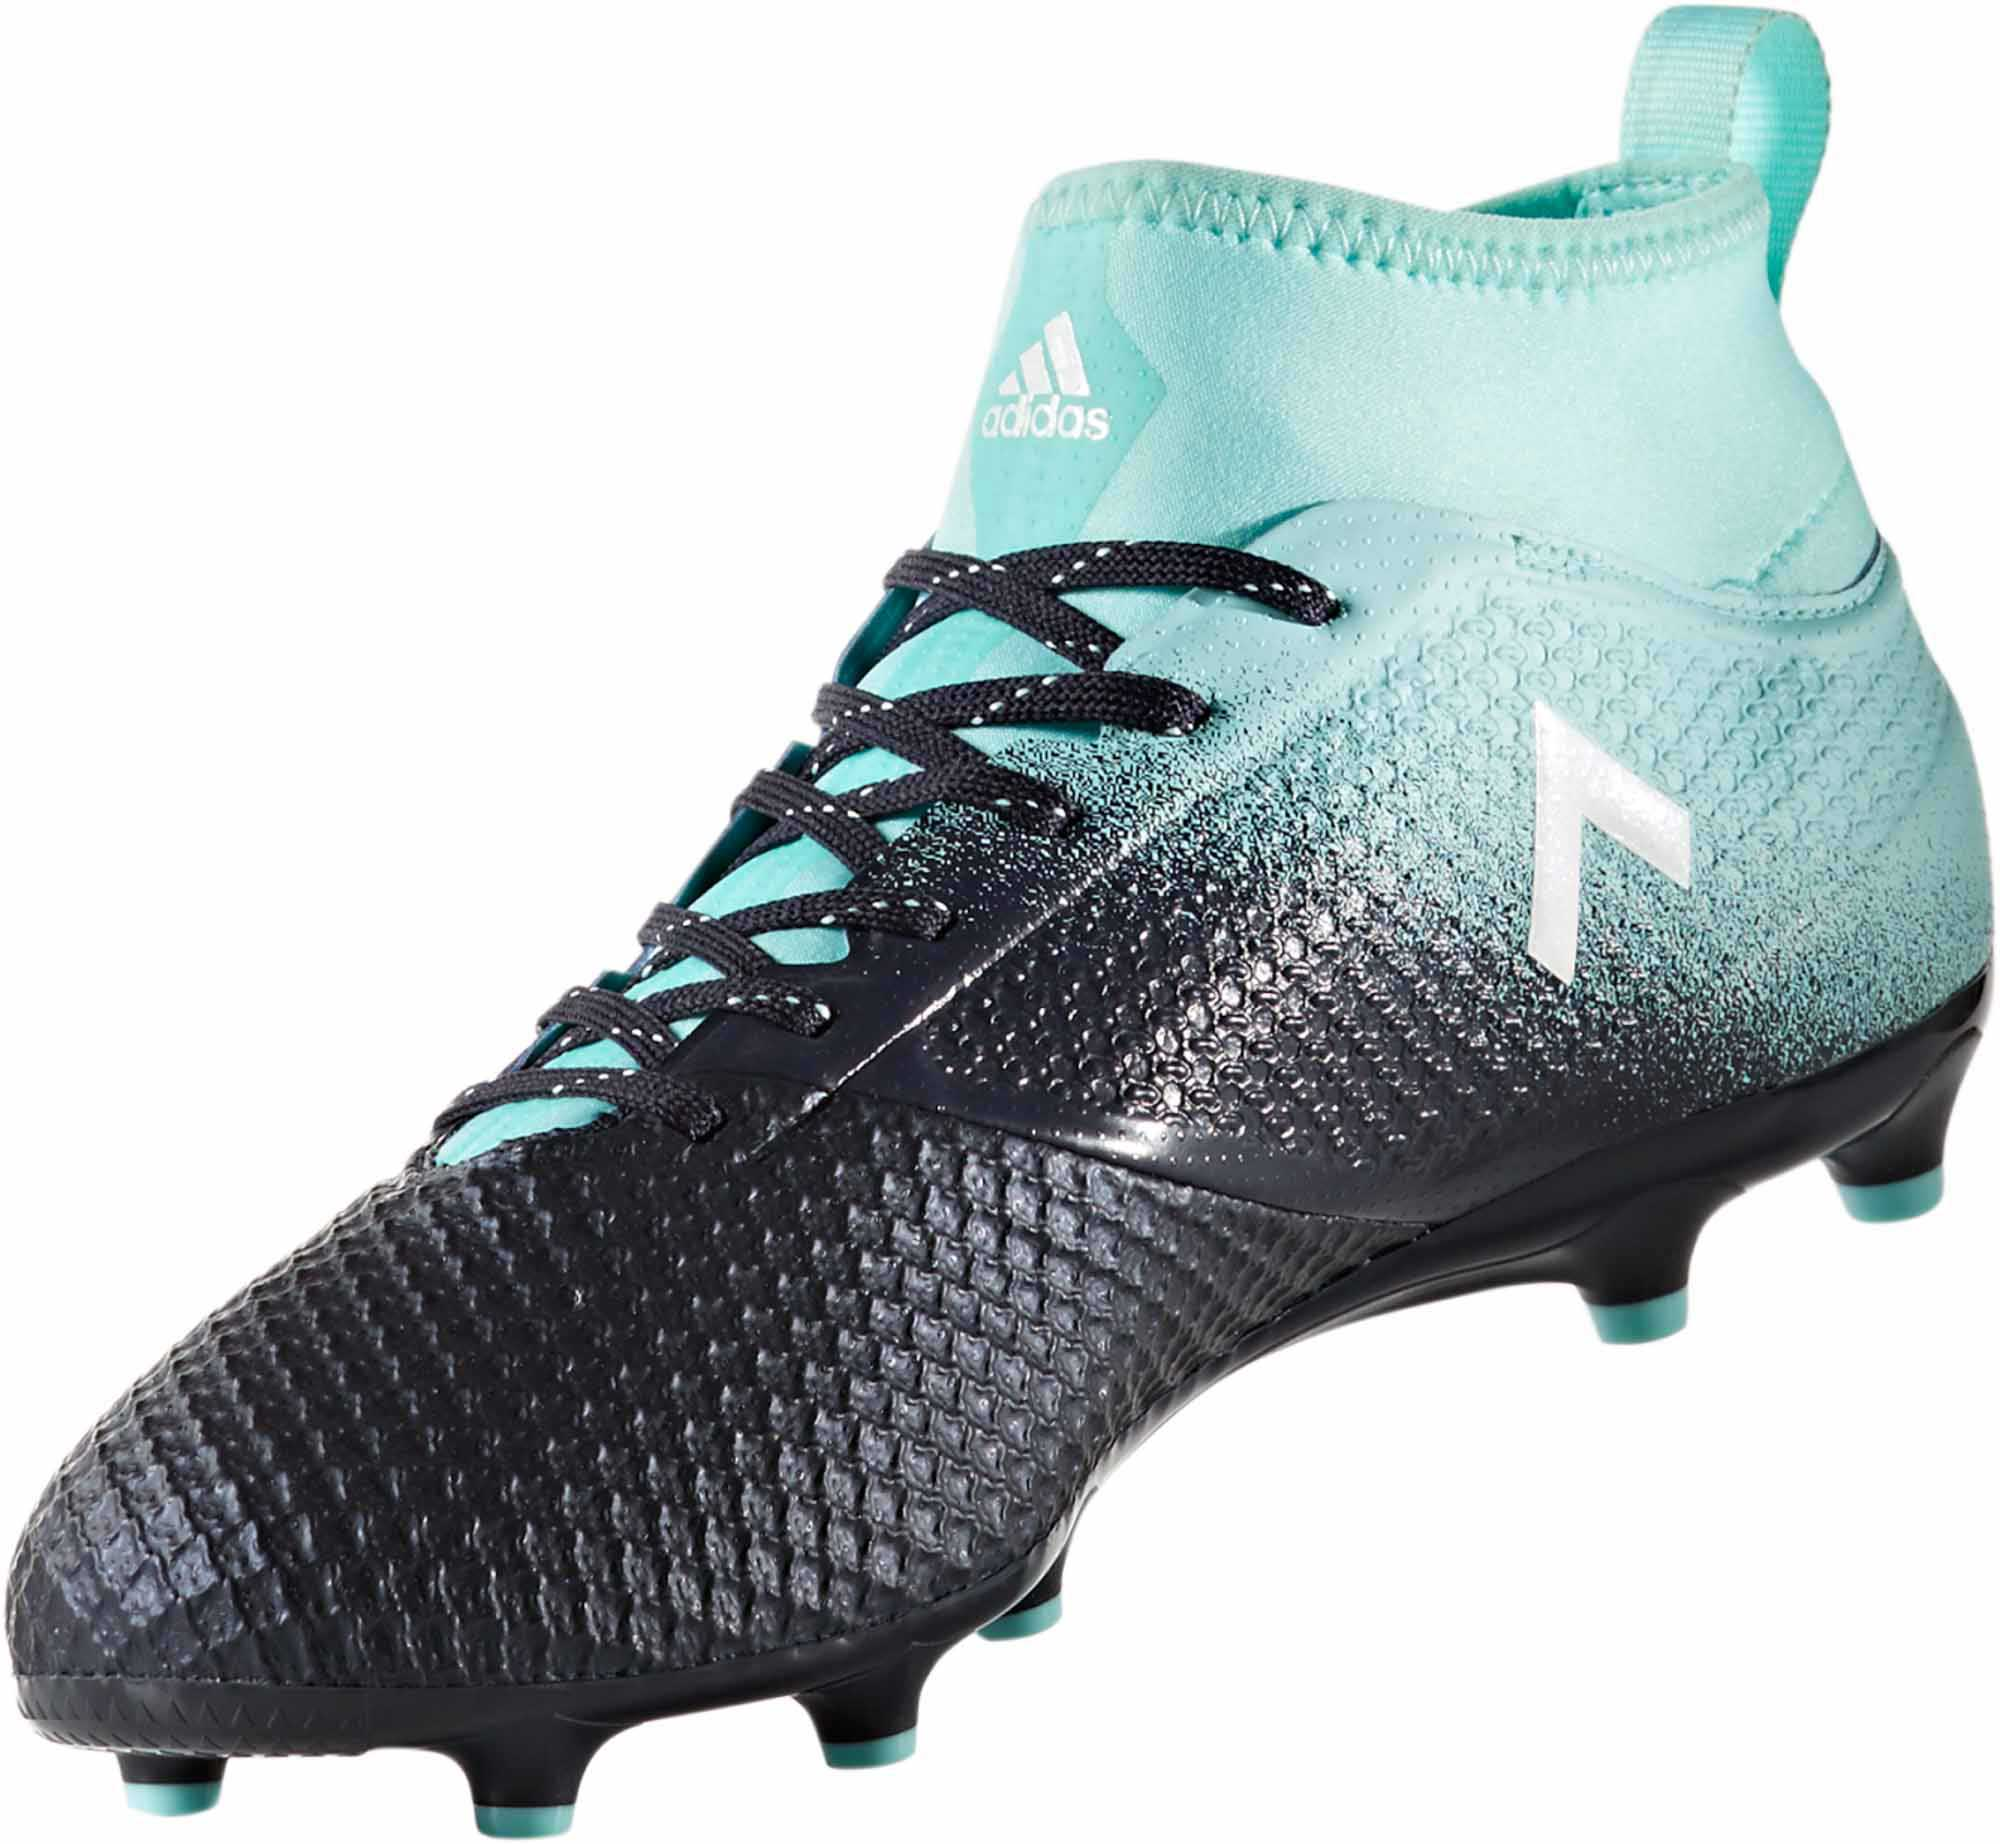 adidas cleats adidas ace 17.3 fg - energy aqua/legend ink JRBMUHB